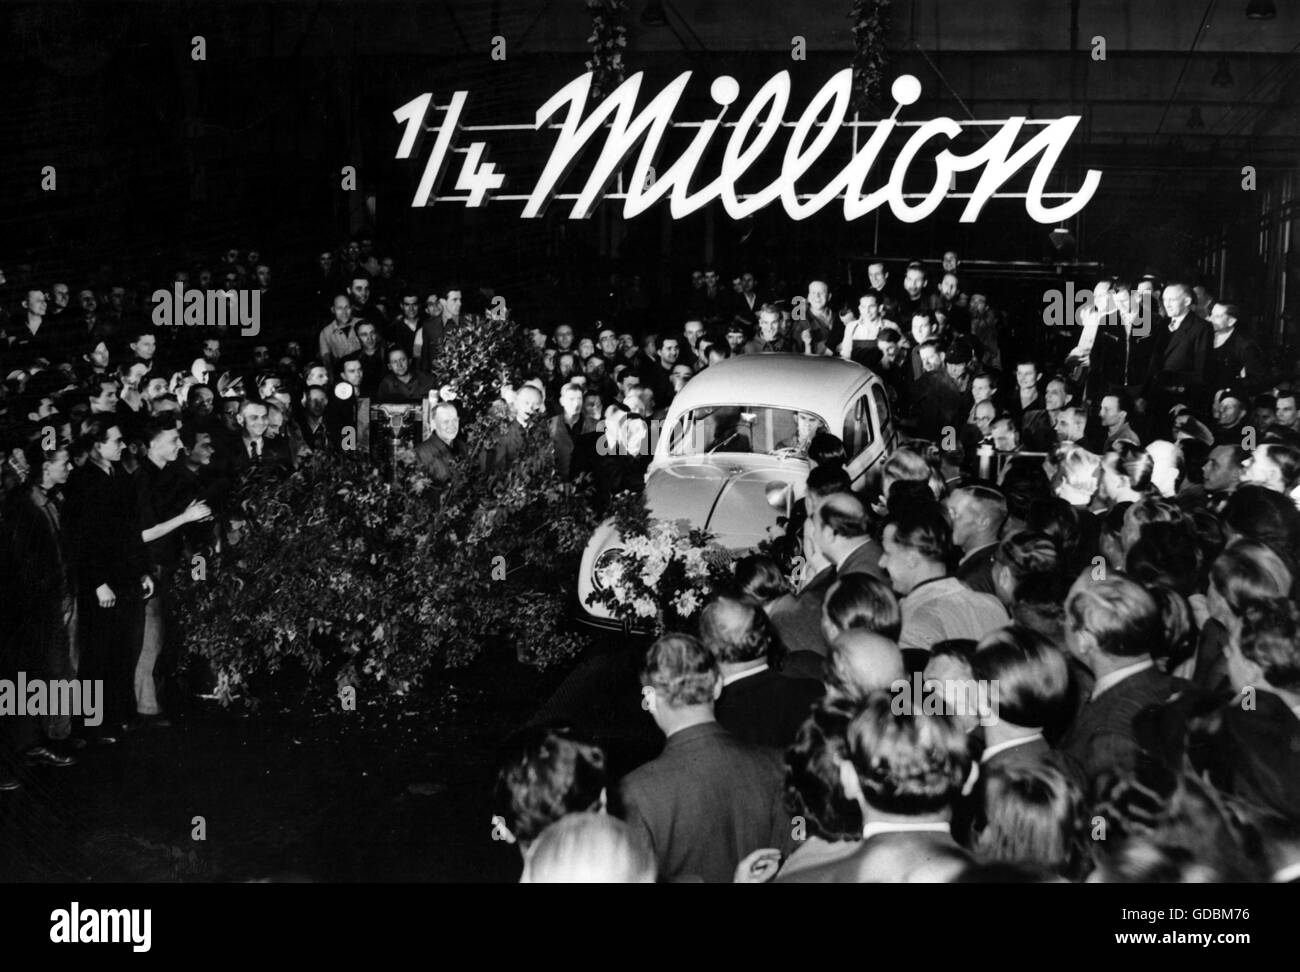 The Miracles 1950s Stockfotos & The Miracles 1950s Bilder - Alamy